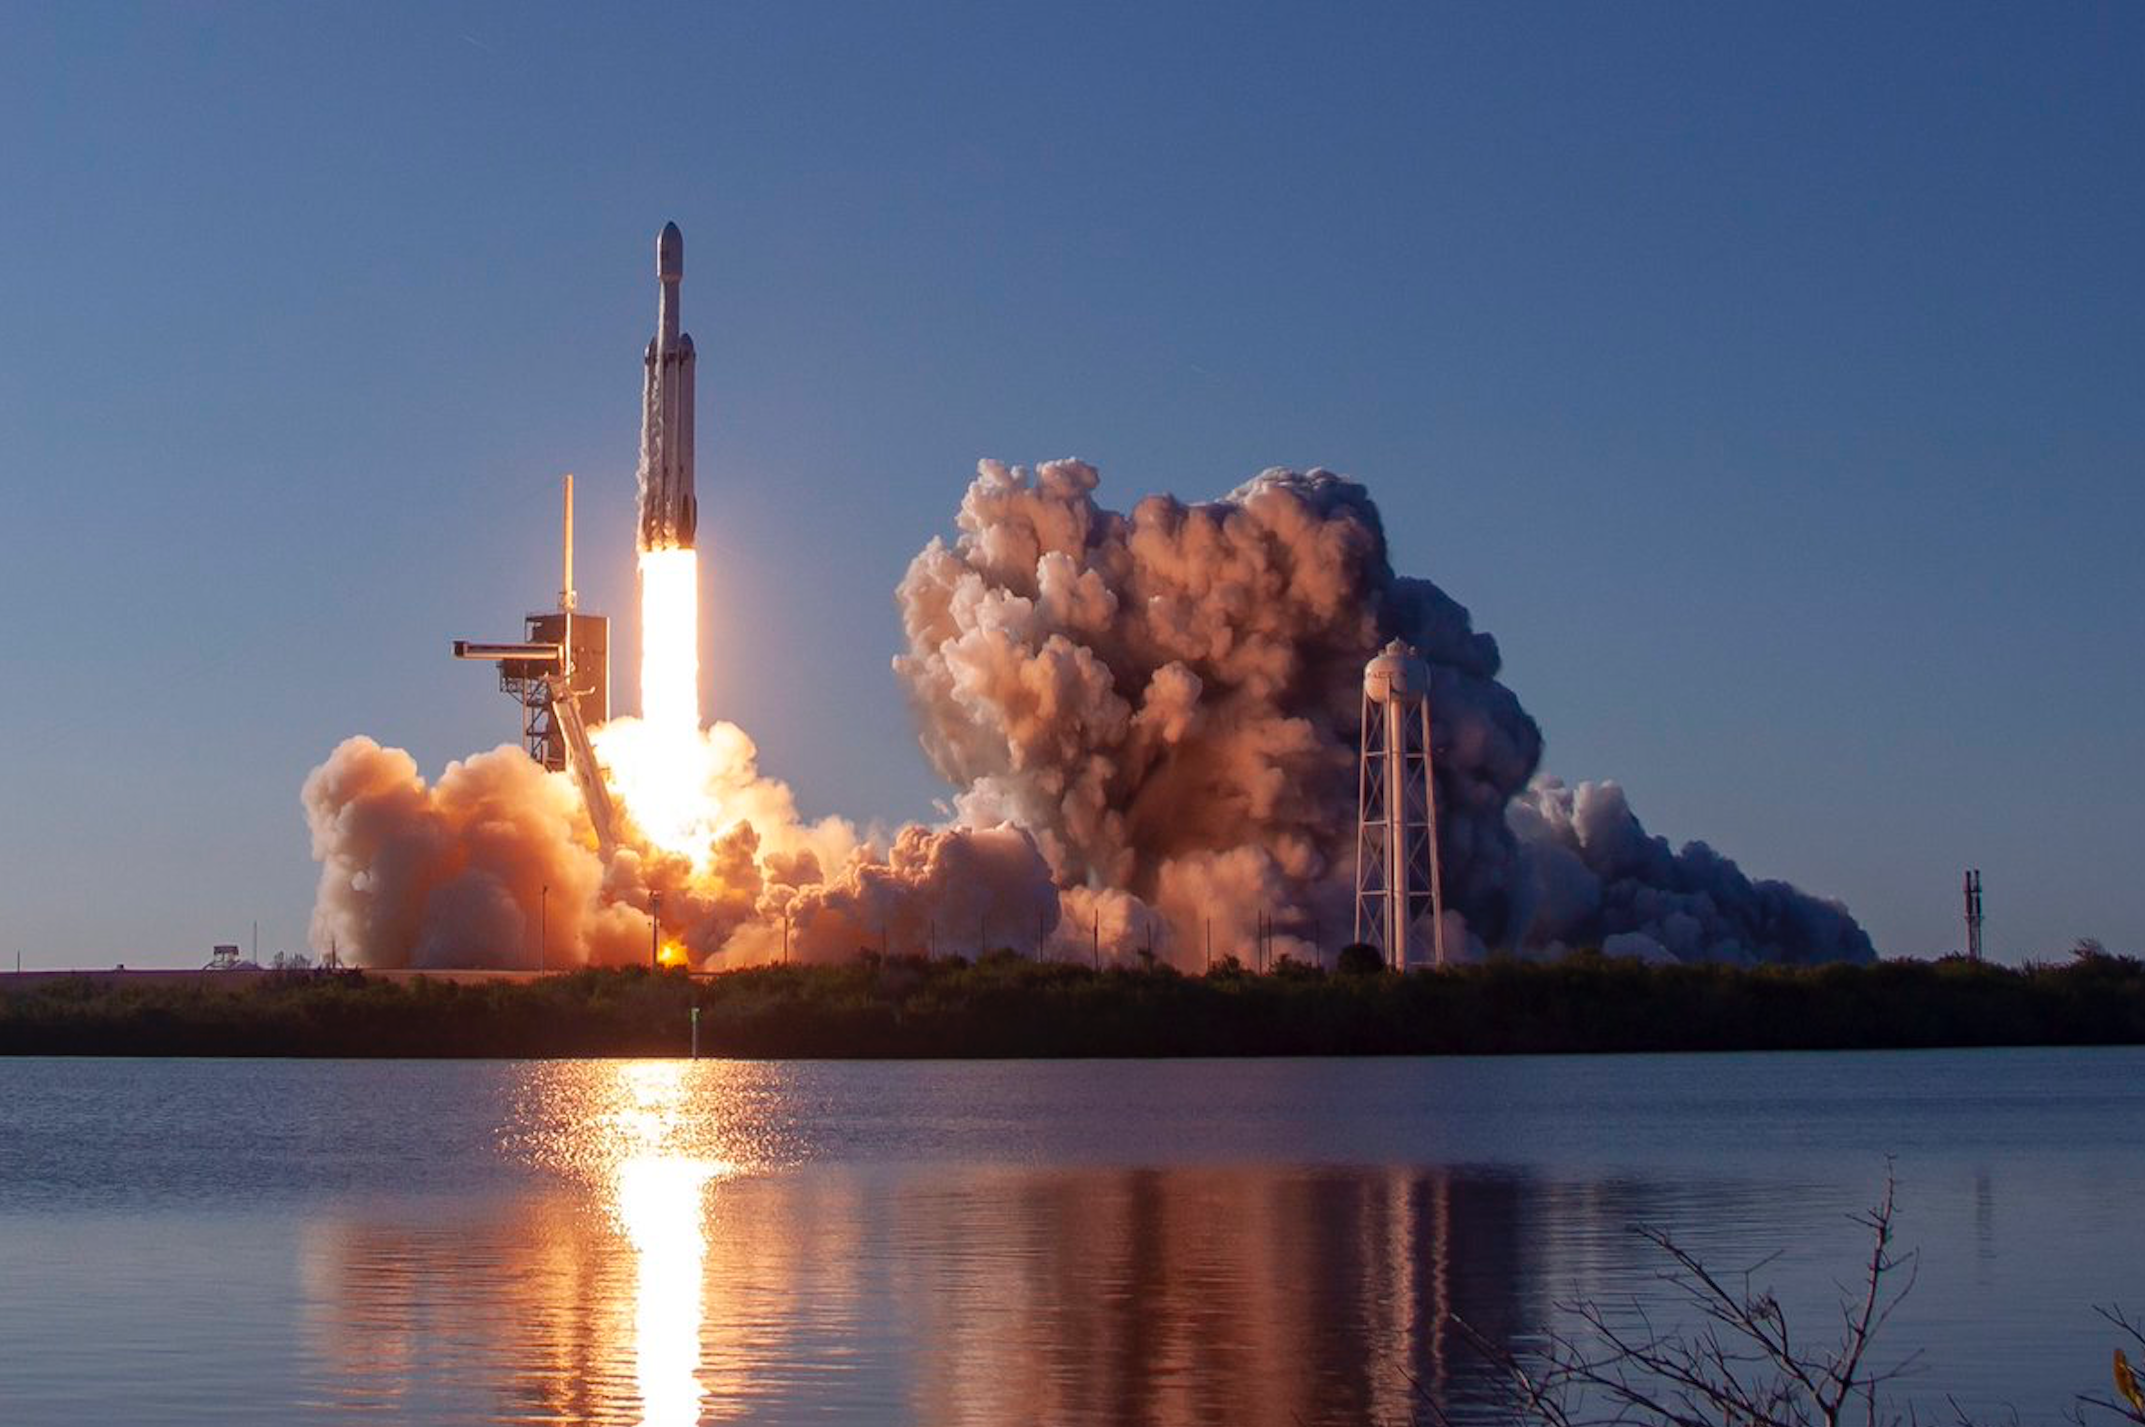 Watch SpaceX Land Three Falcon Boosters for the First Time